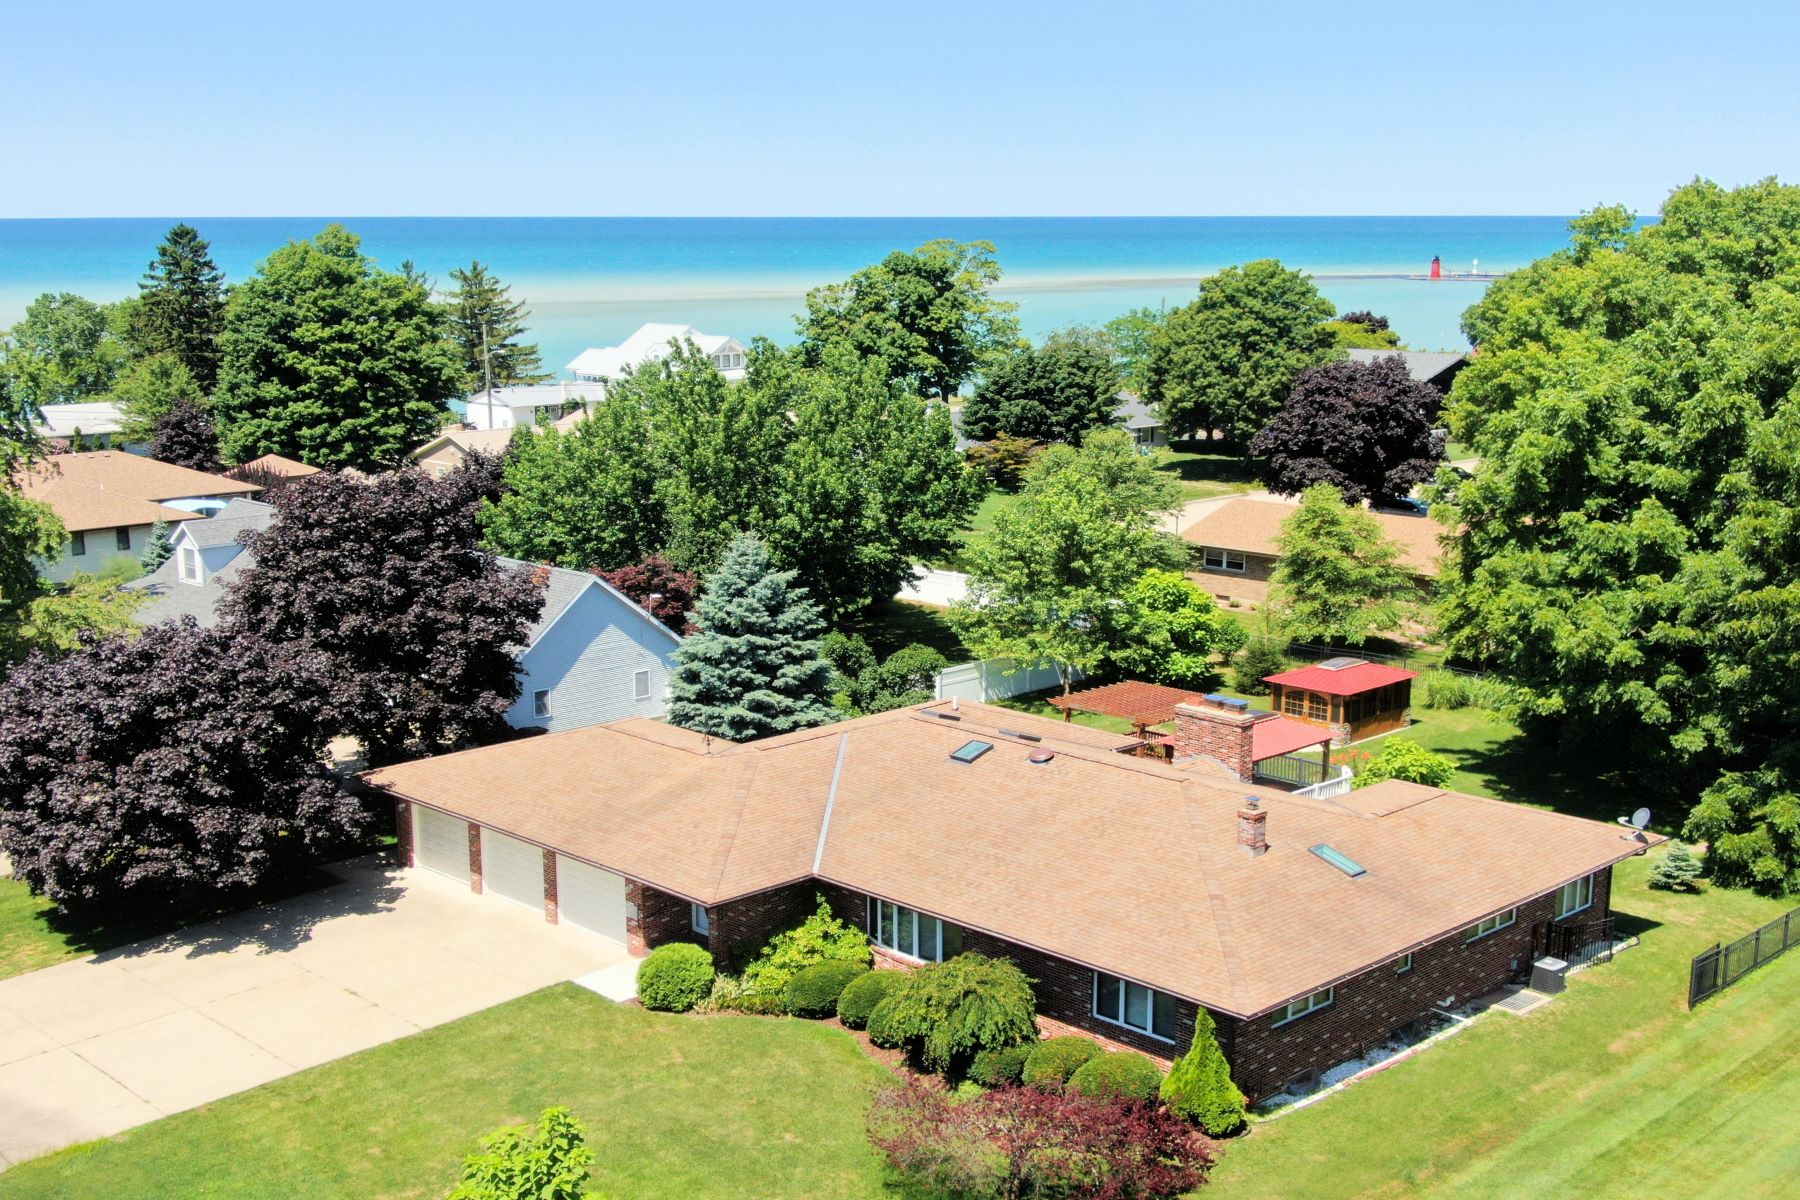 Single Family Homes for Active at Stunning Home in Tranquil Location 75 Gabriel Drive South Haven, Michigan 49090 United States